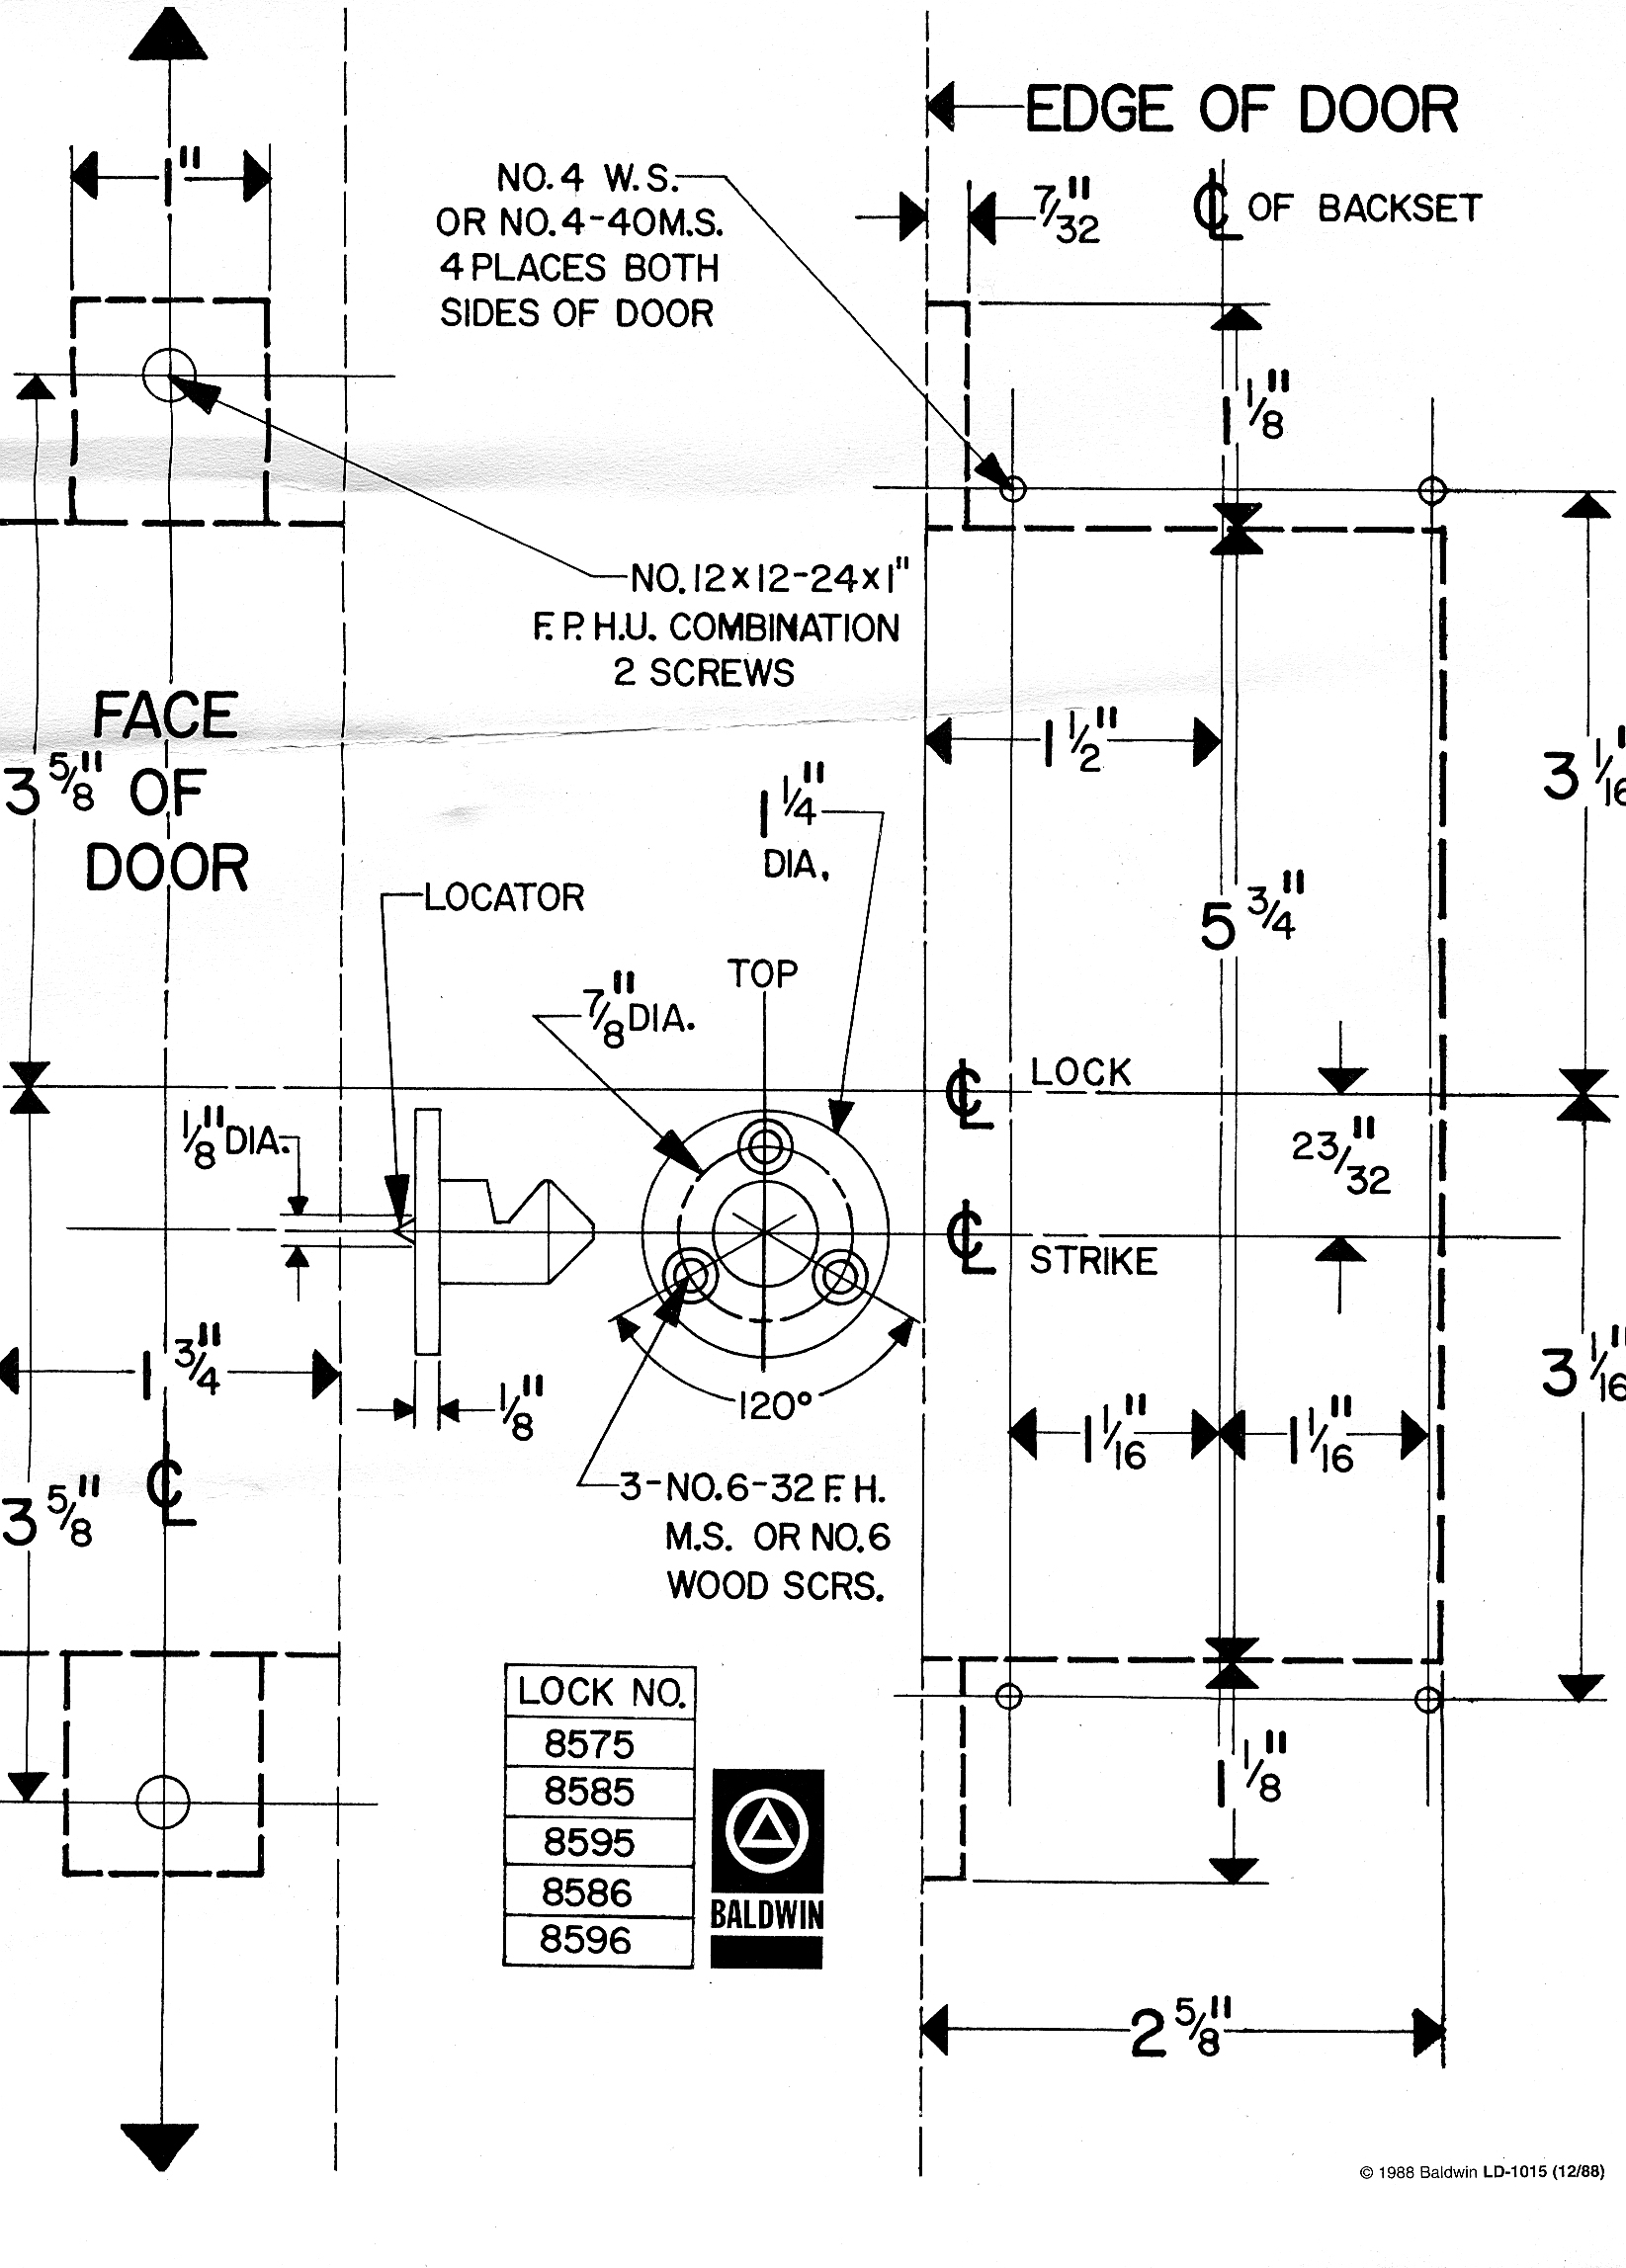 Baldwin Mortise Lock Assembly Diagram - Trusted Wiring Diagram •